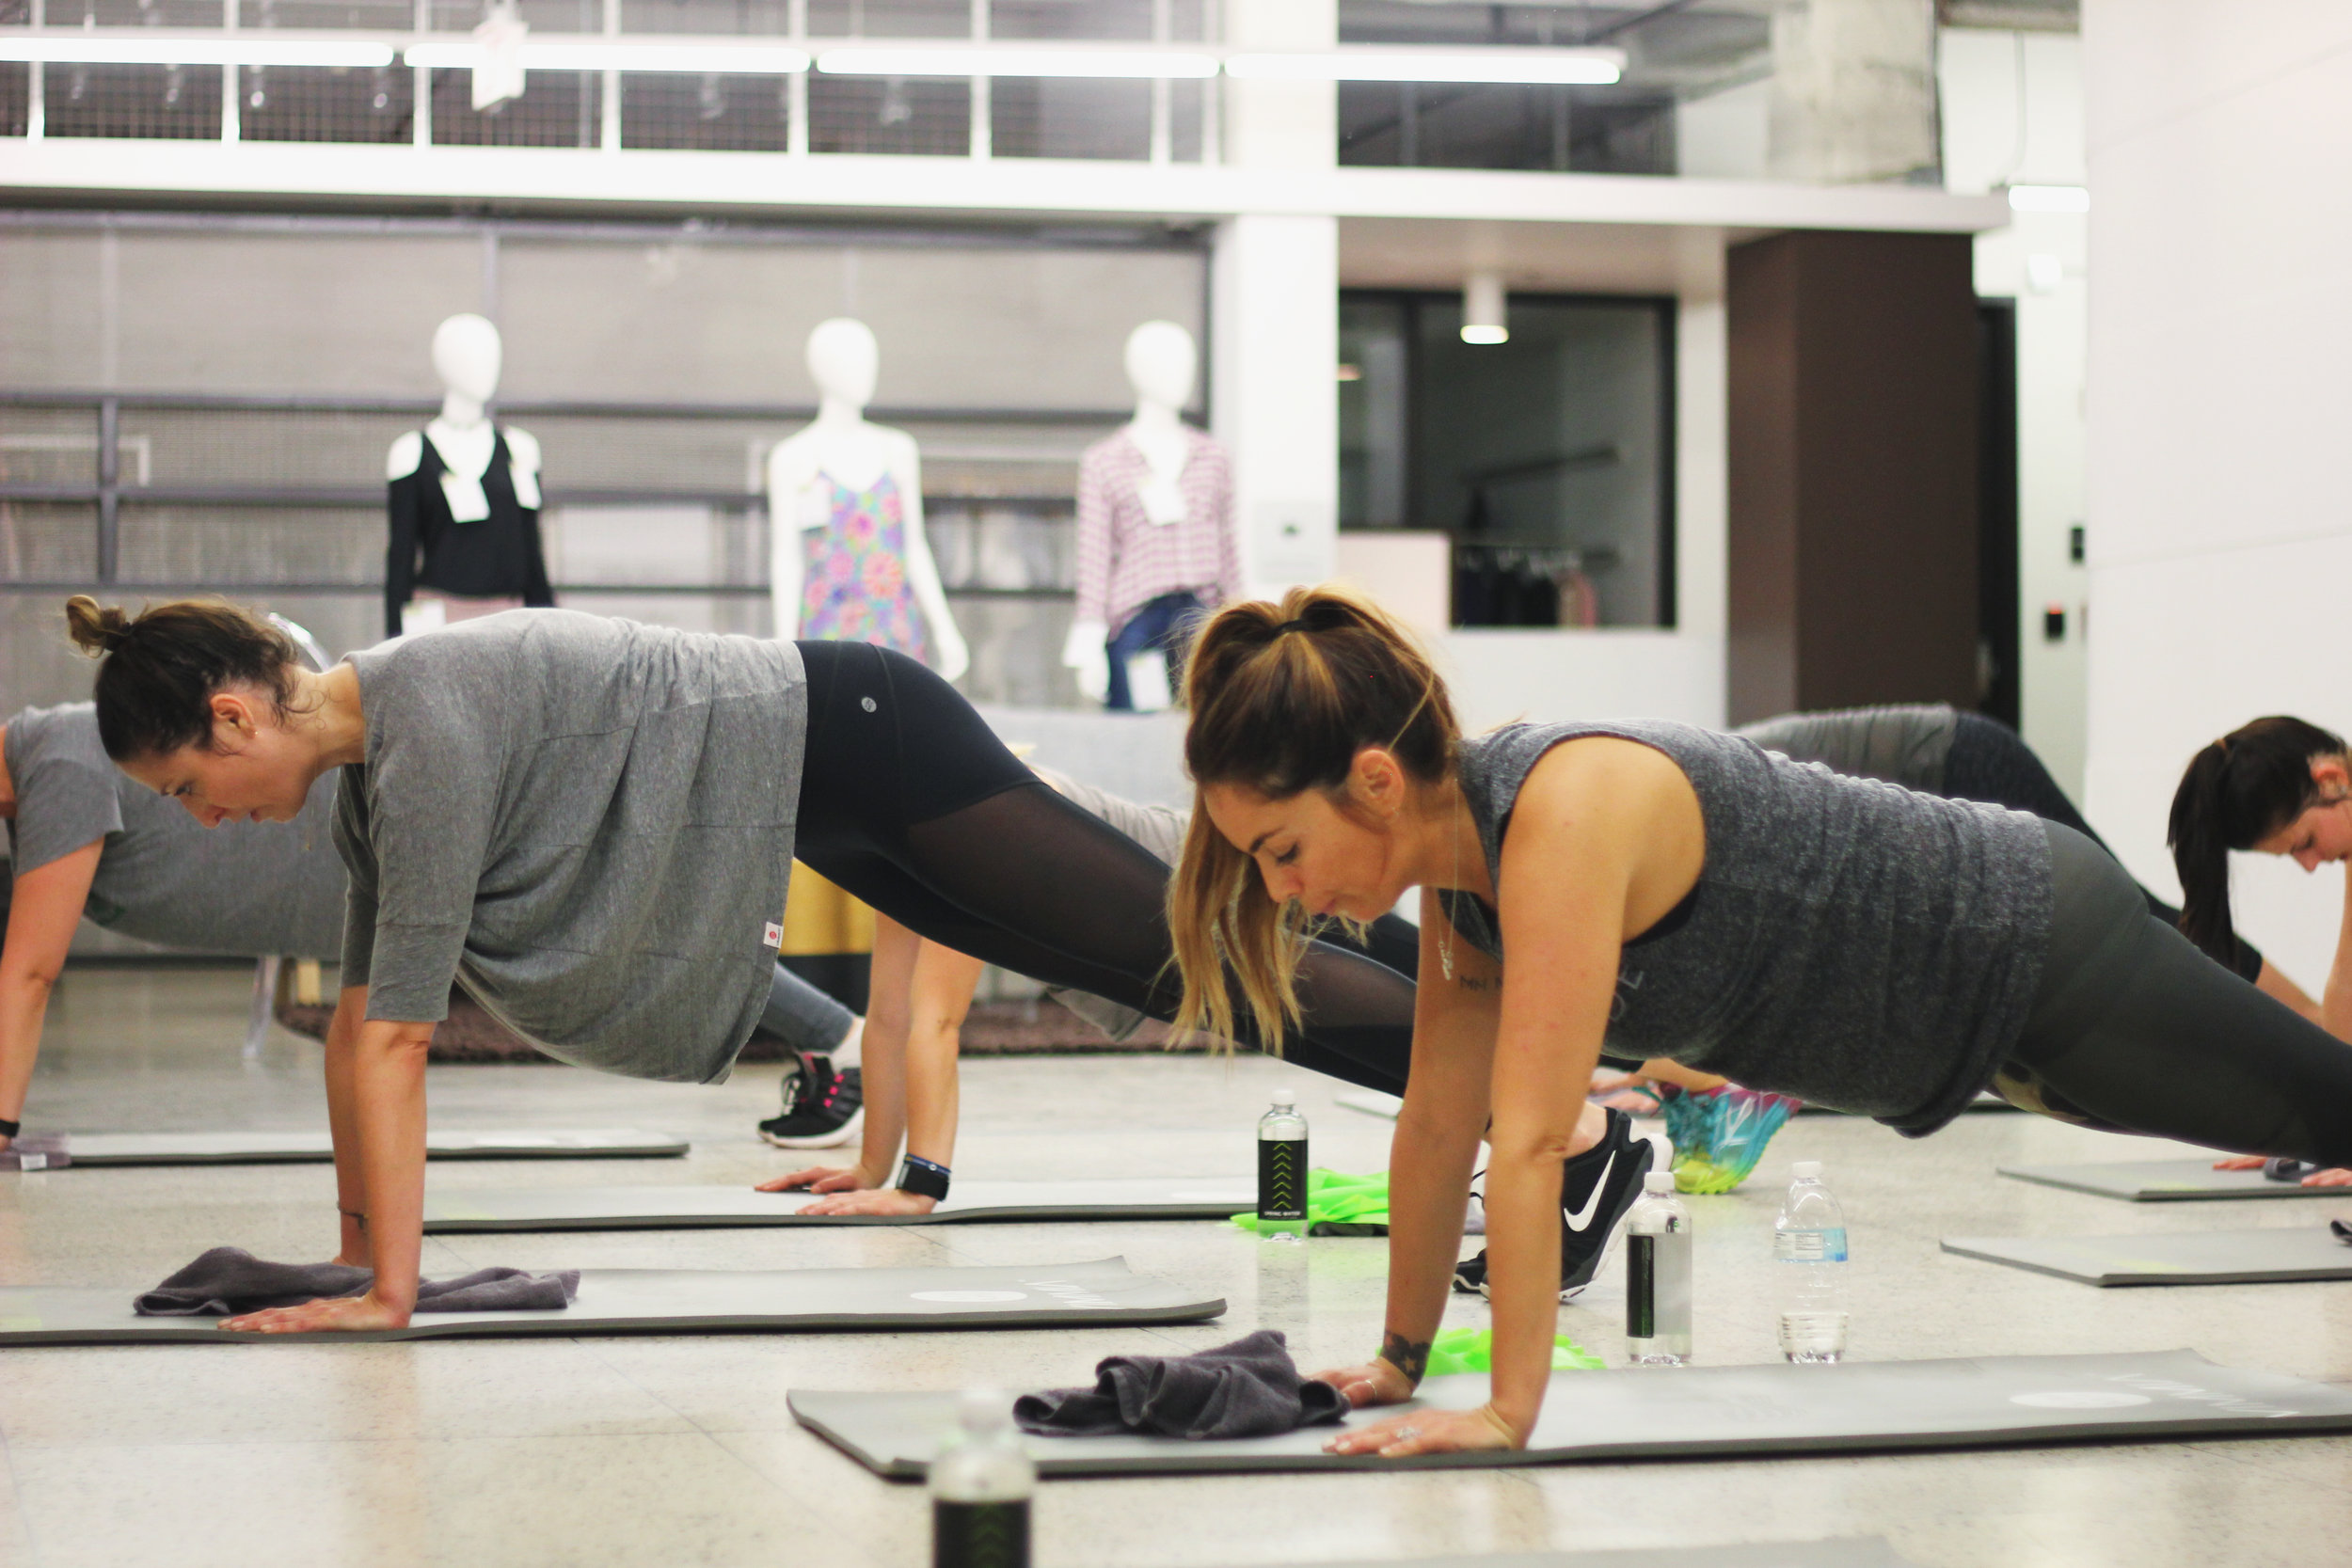 Join TreadBR founder, Nicole Williamson, as she winds down your Wednesday at FIG in Dallas! She'll be leading you through a one-hour workout sponsored by Vimmia focusing on lengthening and stretching your muscles, while simultaneously strengthening your body.